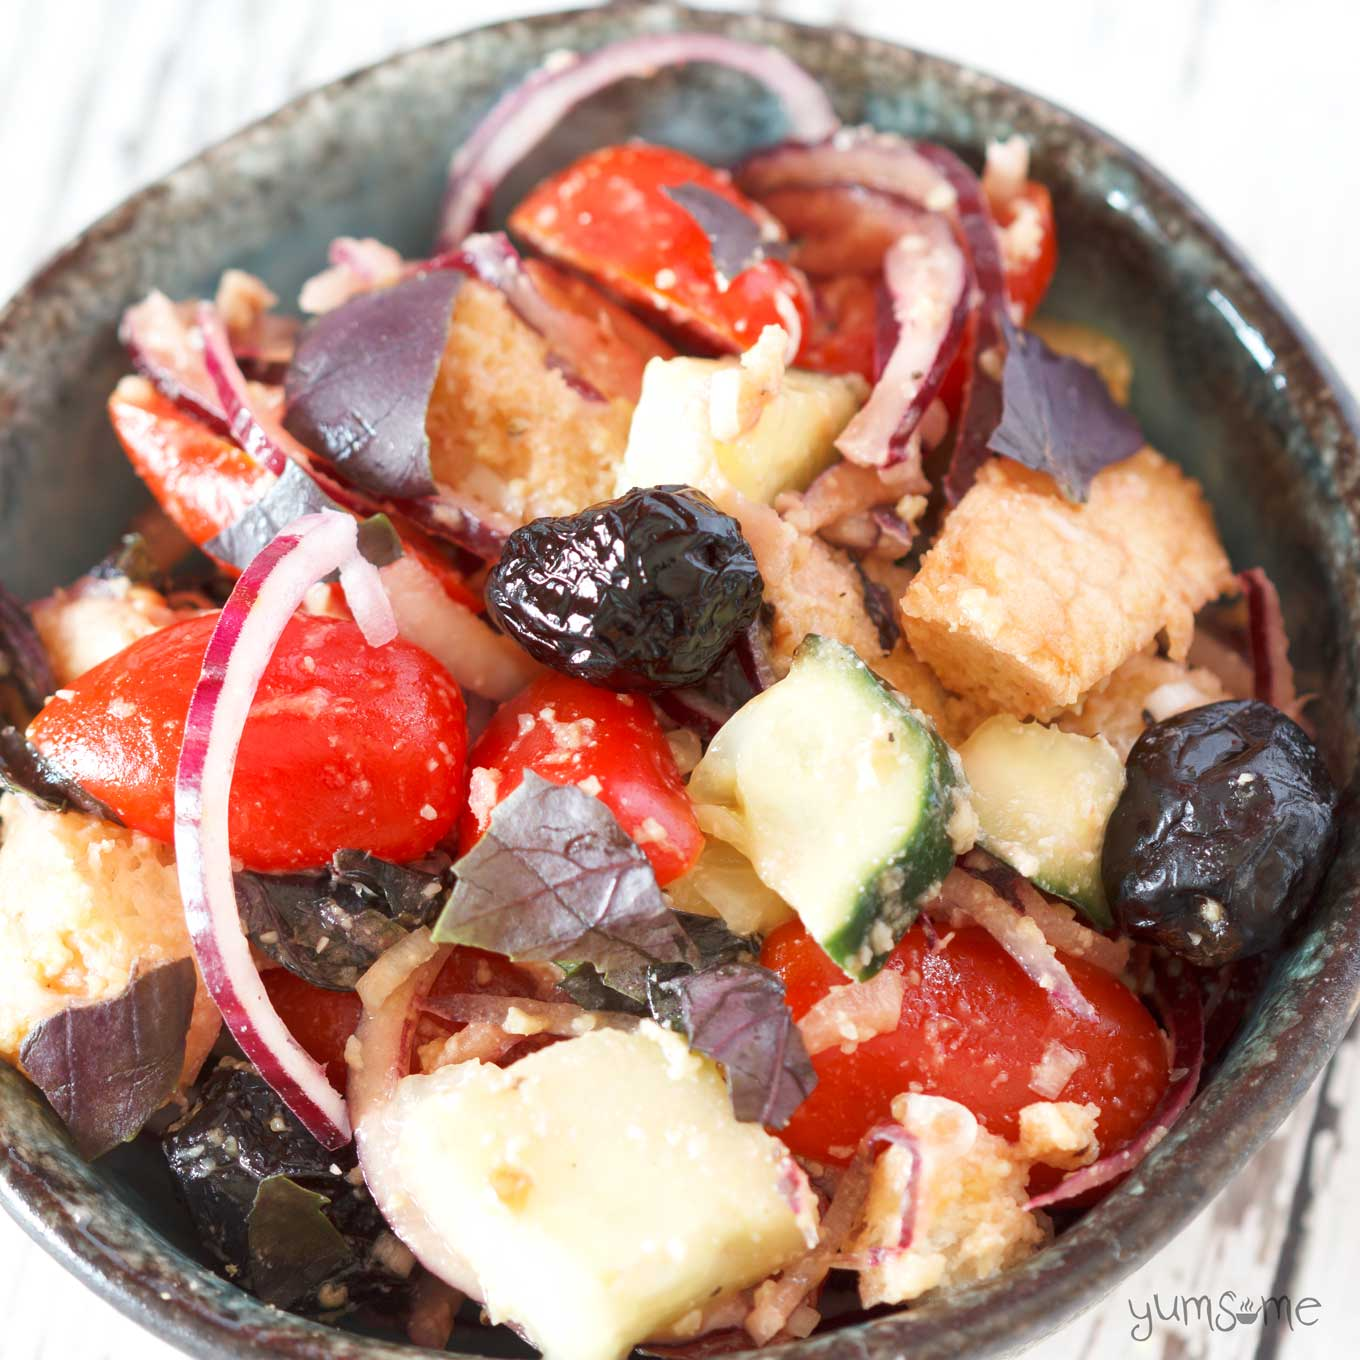 Panzanella - Tuscany's deliciously simple bread salad is perfect for spring and summer! | yumsome.com